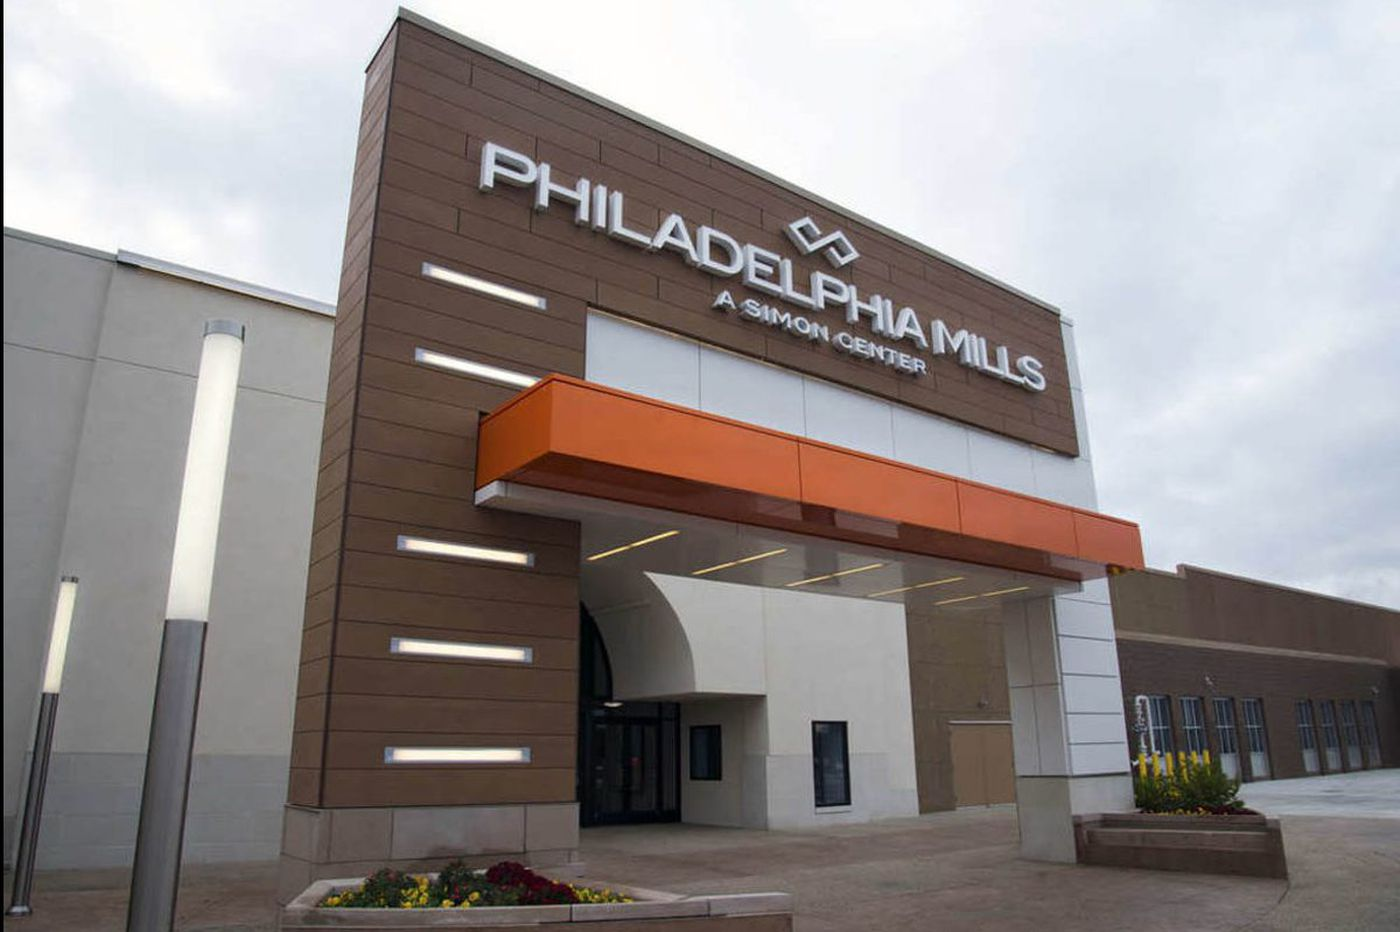 Thieves steal $30k worth of jewelry at Philadelphia Mills mall